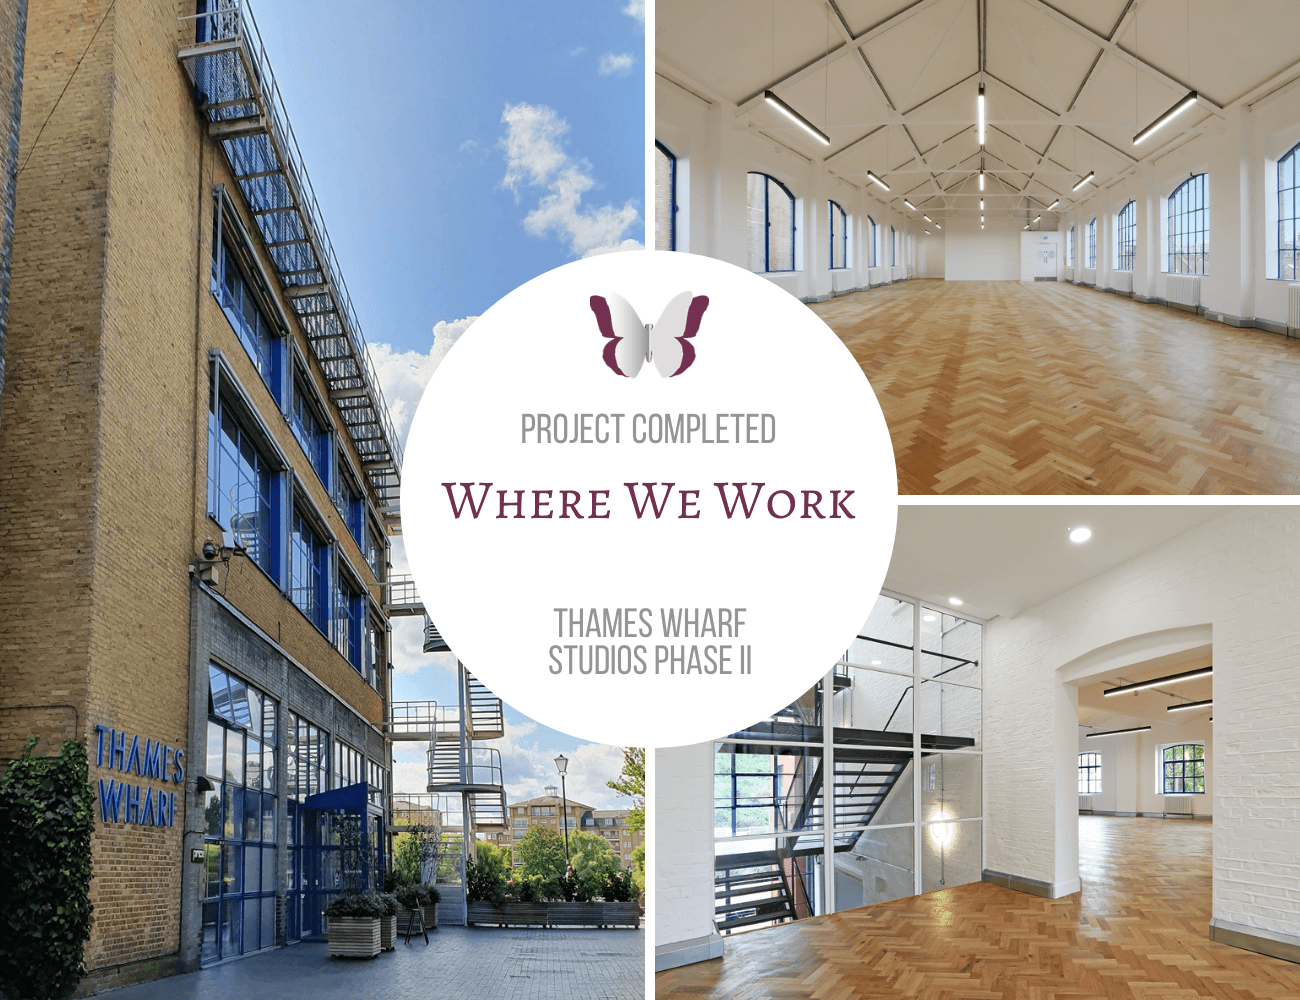 PROJECT COMPLETED: THAMES WHARF STUDIOS